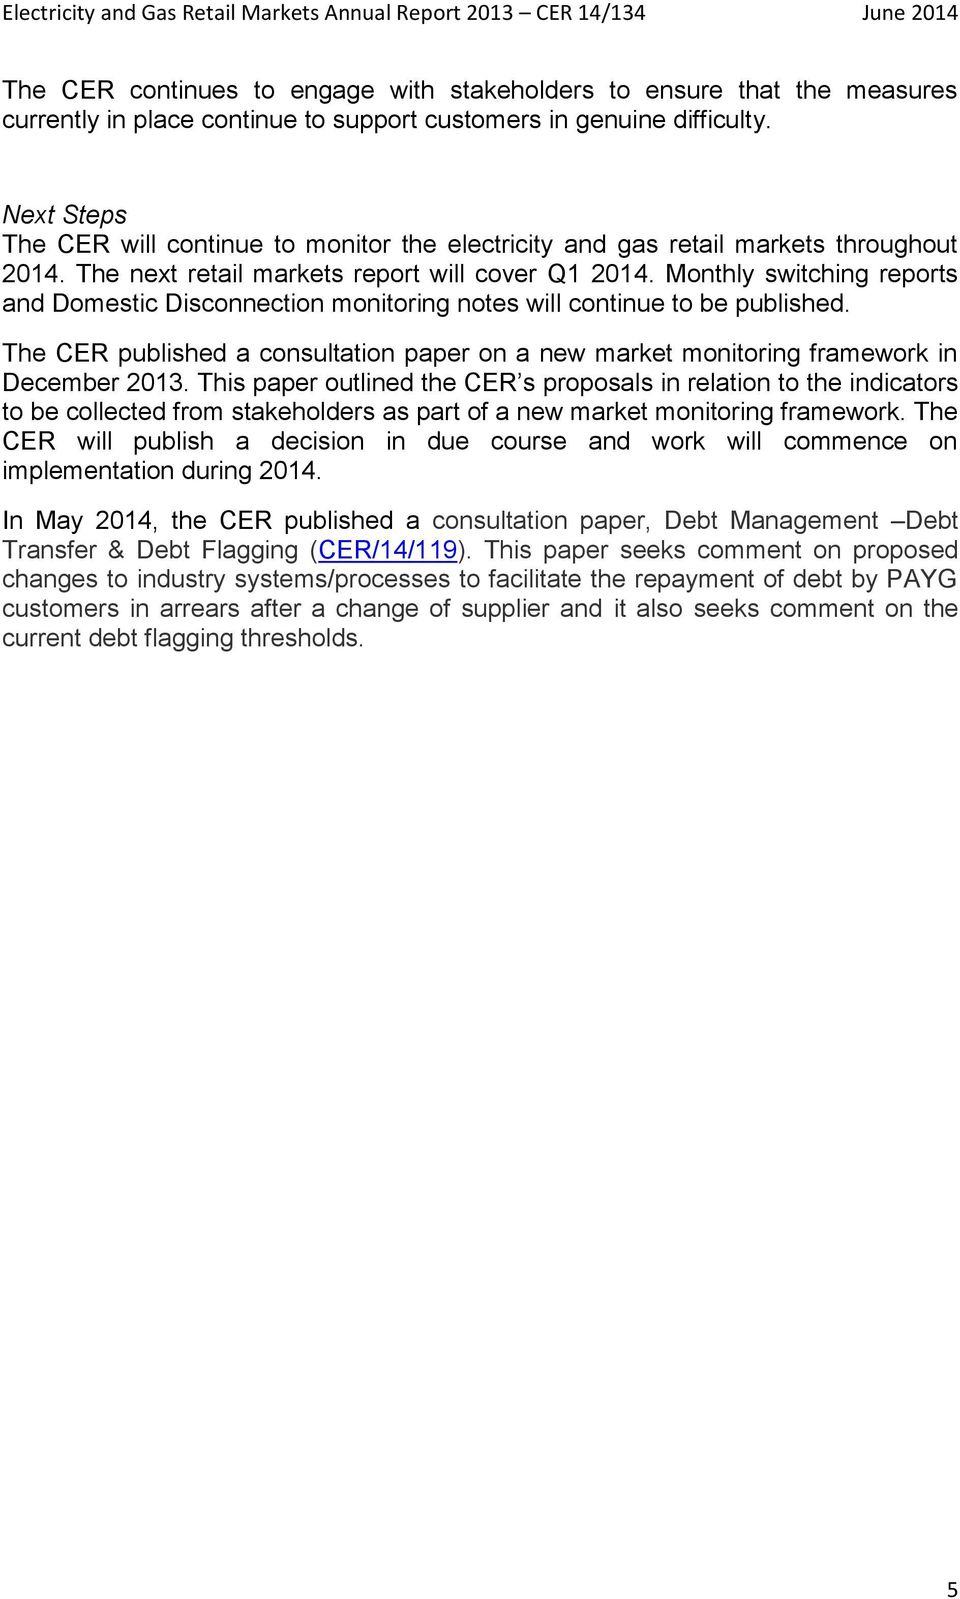 Monthly switching reports and Domestic Disconnection monitoring notes will continue to be published. The CER published a consultation paper on a new market monitoring framework in December 2013.